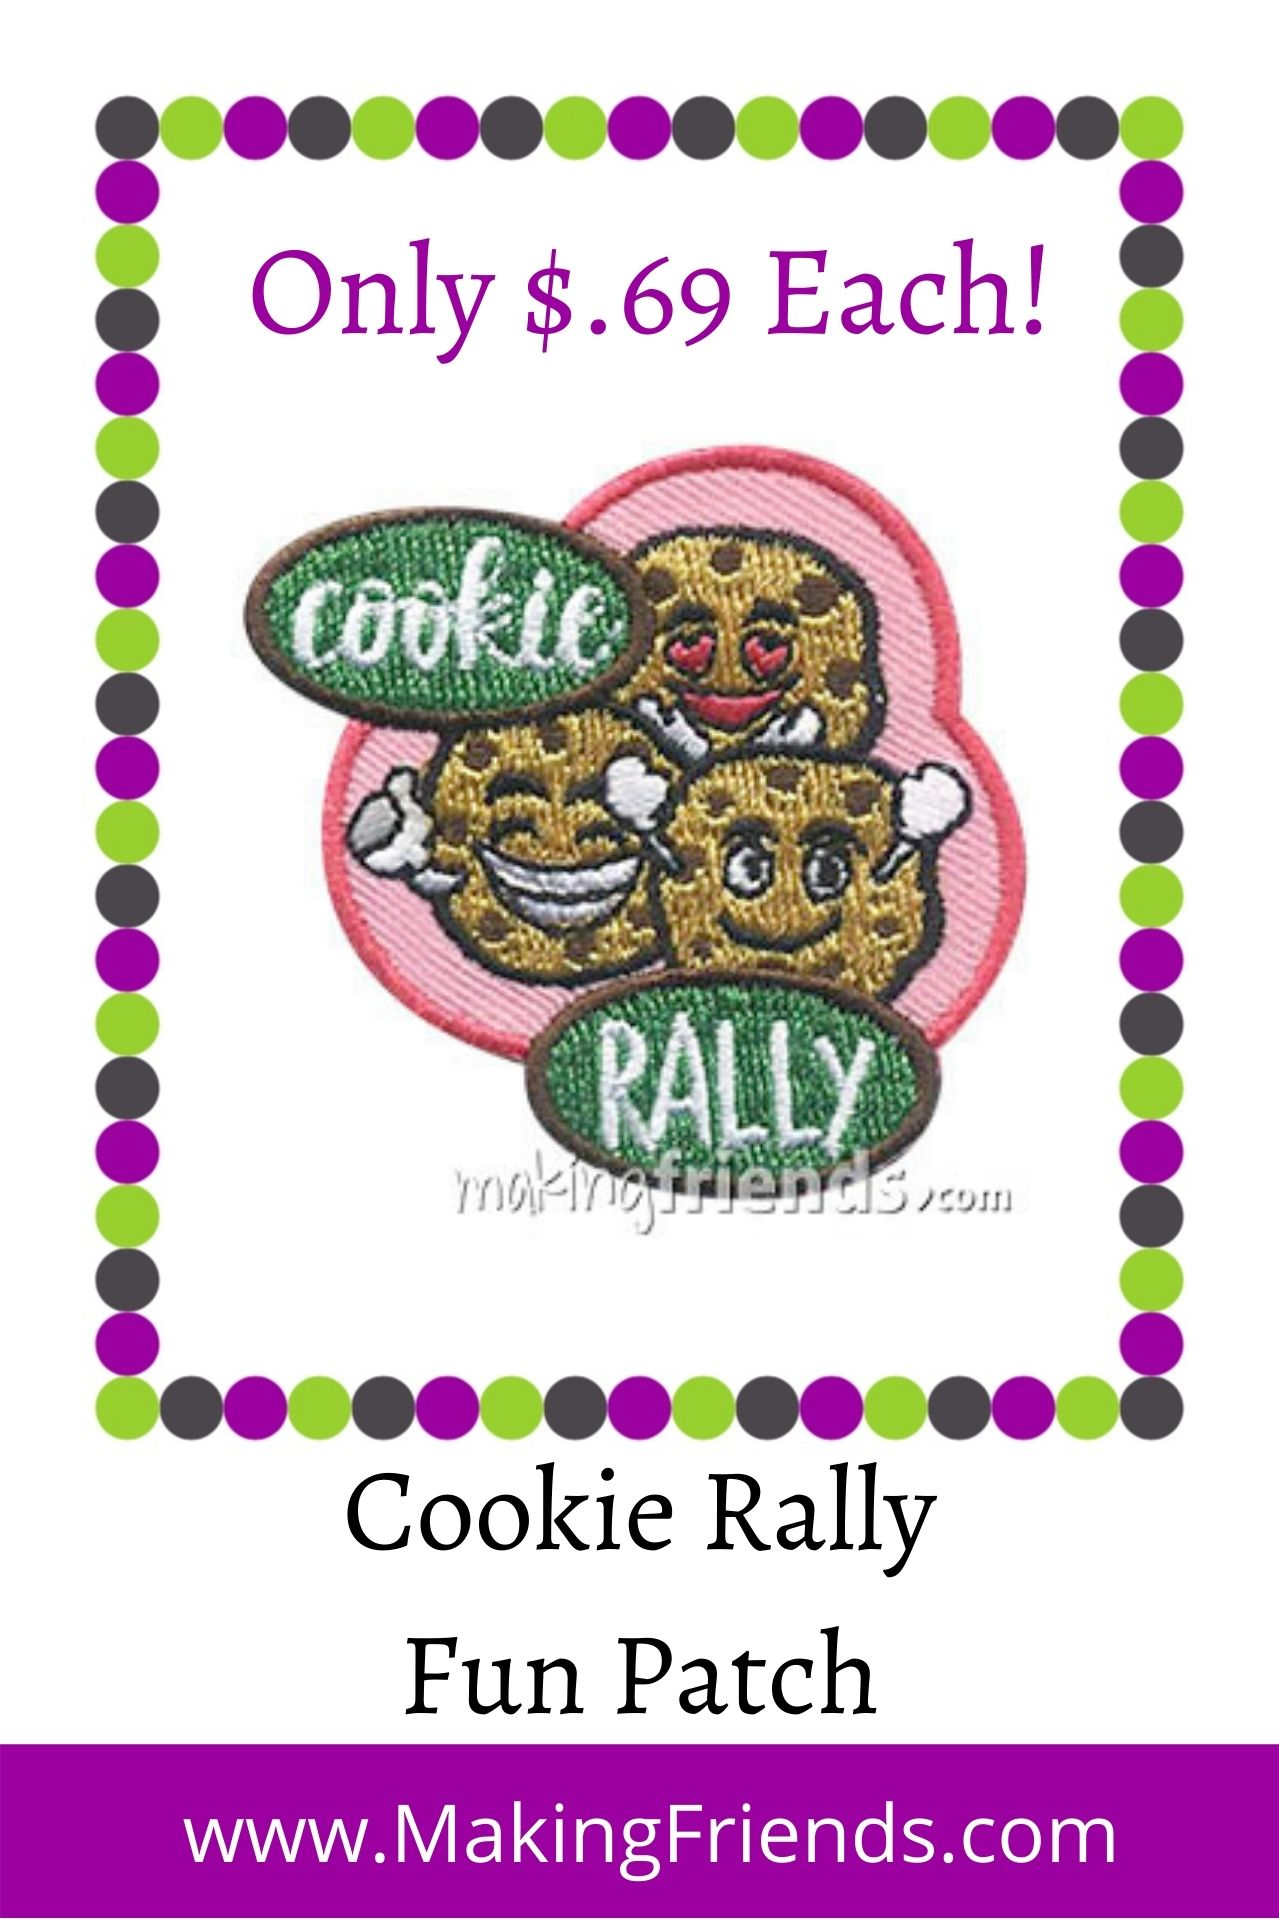 There is no better way to start cookie season than with a cookie rally. Our patch is only $.69 each with free shipping available! #makingfriends #cookierally #girlscoutcookies #cookieseason #gscookies #girlscouts #gsfunpatch #funpatches via @gsleader411